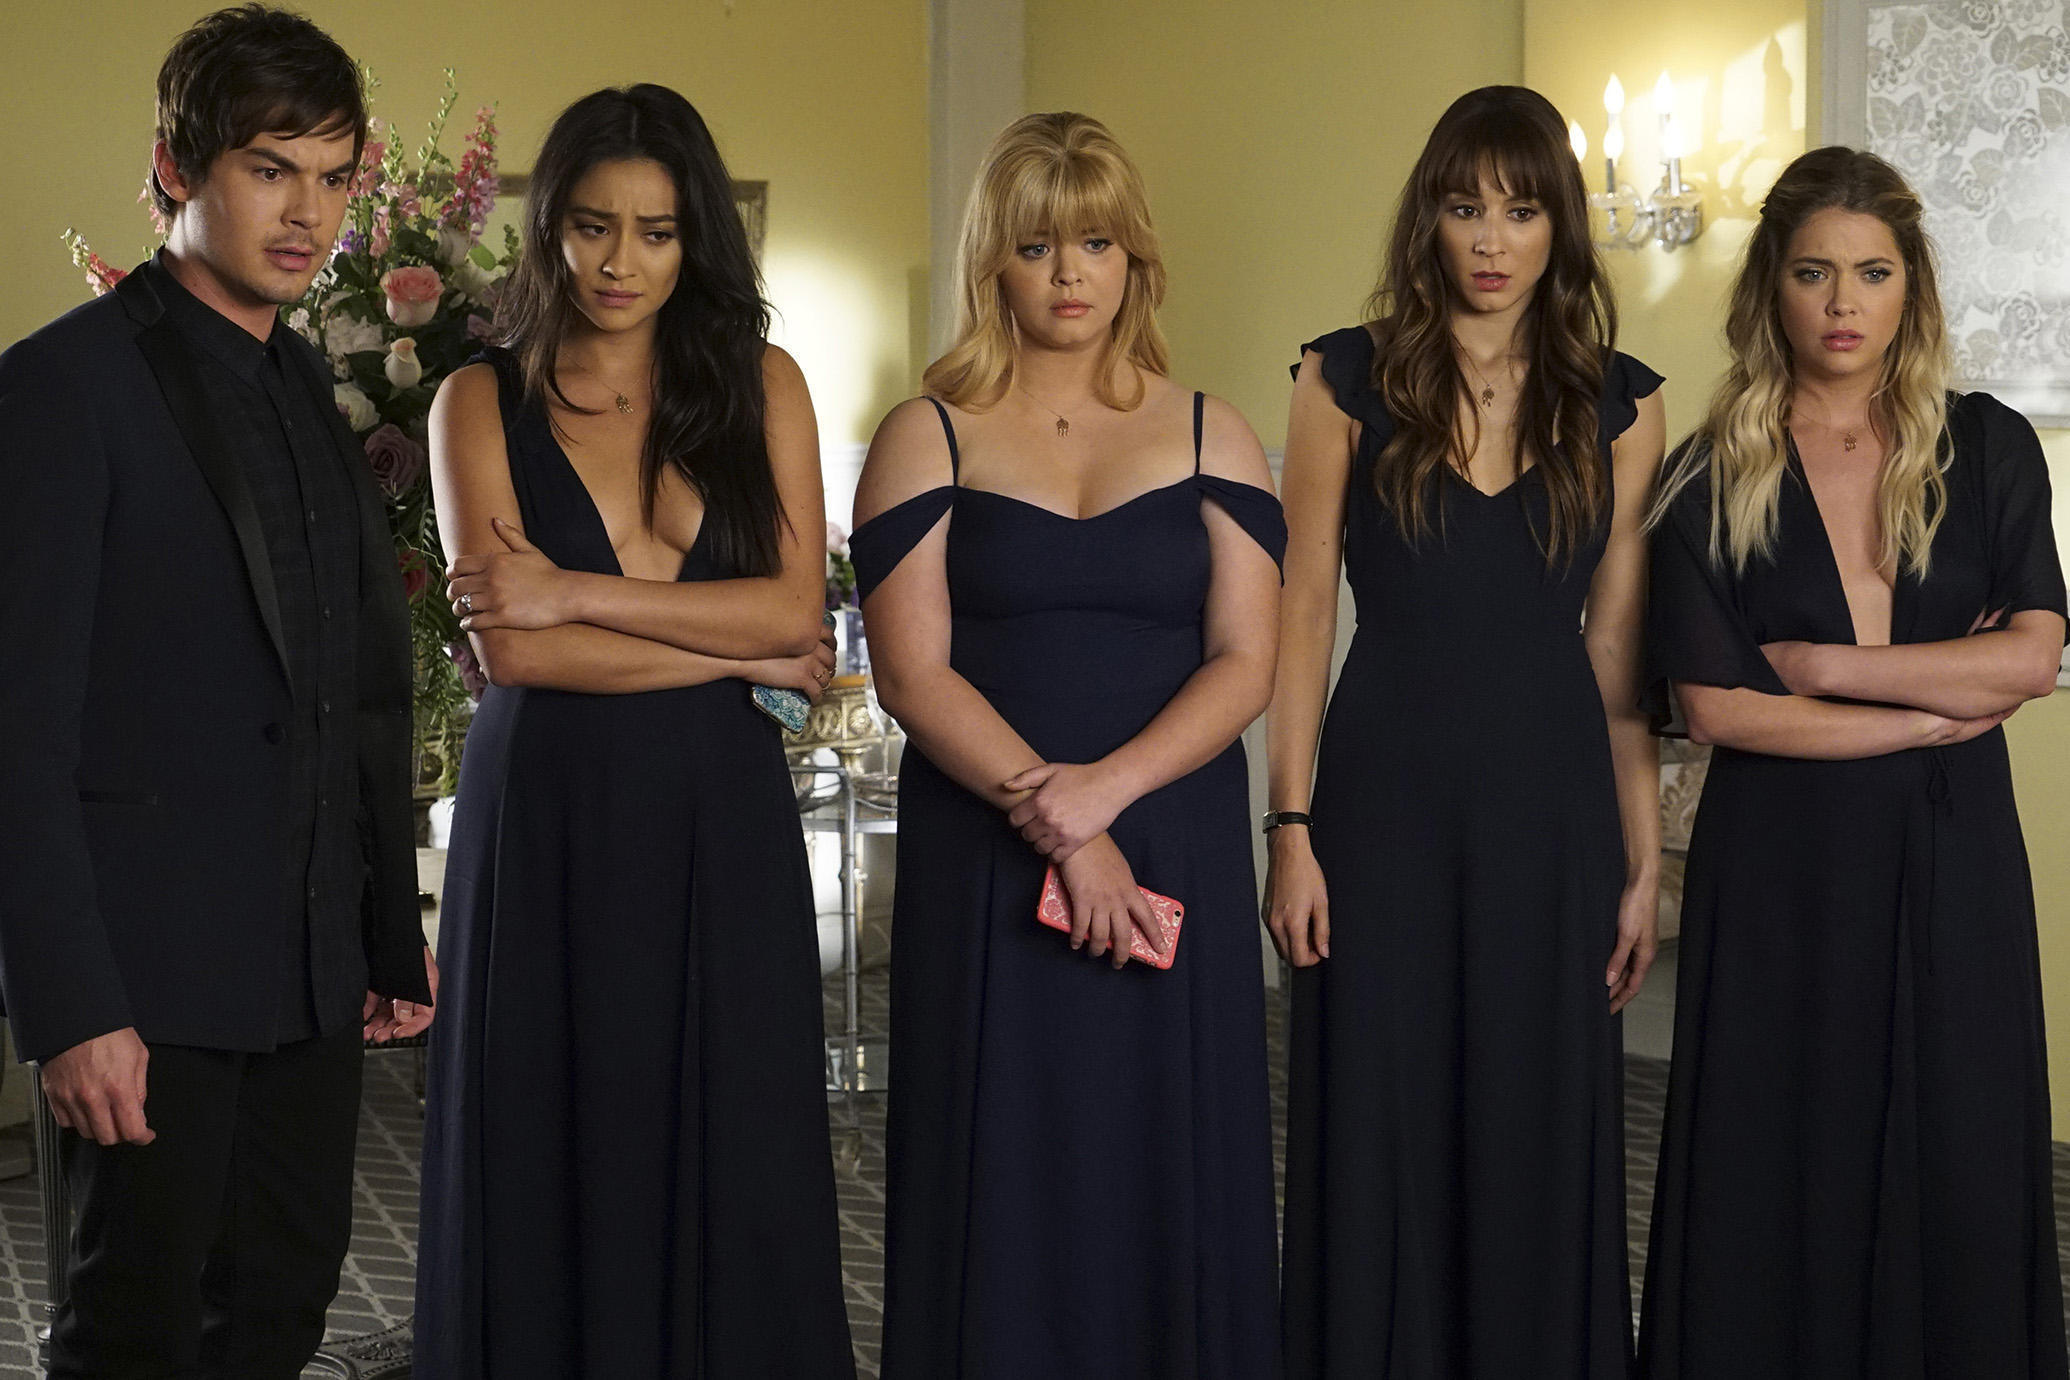 "PRETTY LITTLE LIARS - ""Till Death Do Us  Part"" - Seven seasons of secrets come tumbling out in the two-hour series finale of Freeform's hit original series ""Pretty Little Liars,"" airing TUESDAY, JUNE 27 (8:00 - 10:01 p.m. EDT). Immediately following the finale, stars Troian Bellisario, Ashley Benson, Lucy Hale, Shay Mitchell and Sasha Pieterse, as well as executive producer I. Marlene King, will sit down for an hour-long unbarred and uncensored tell-all after-show to discuss all of the series' tightly held secrets, behind-the-scenes insights, and top moments. Fans can catch up on all of the drama with an all-day marathon of season seven starting at 11:00 a.m. EDT and running up to the two-hour series finale at 8:00 p.m. EDT. (Freeform/Eric McCandless) TYLER BLACKBURN, SHAY MITCHELL, SASHA PIETERSE, TROIAN BELLISARIO, ASHLEY BENSON"